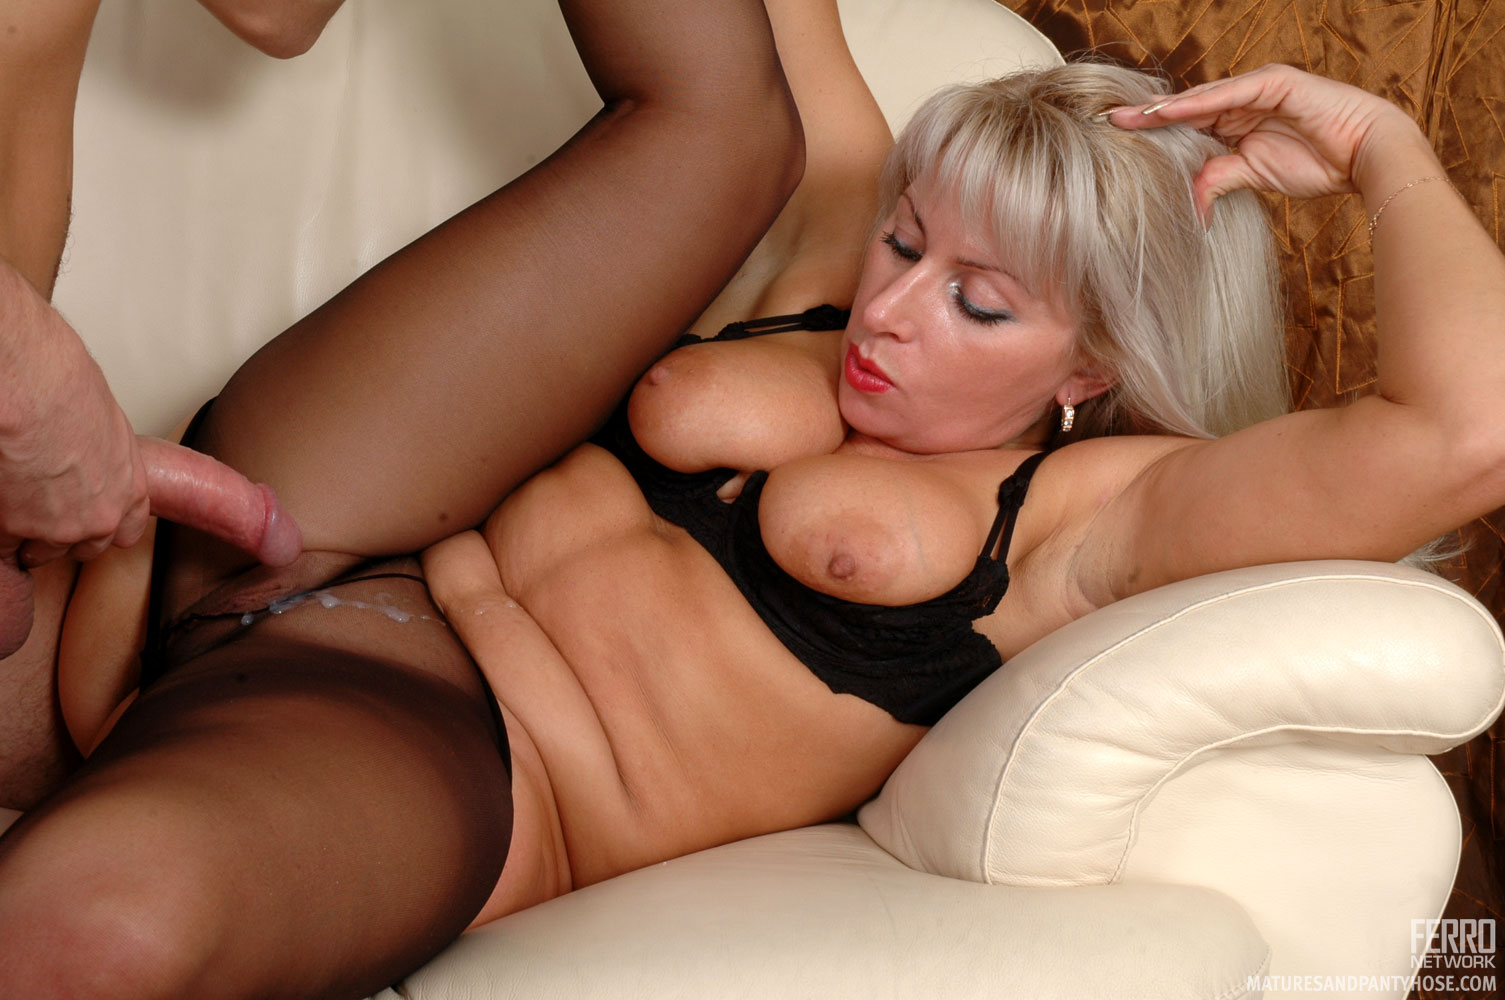 Pantyhose Mature Pantyhose Sex New 112